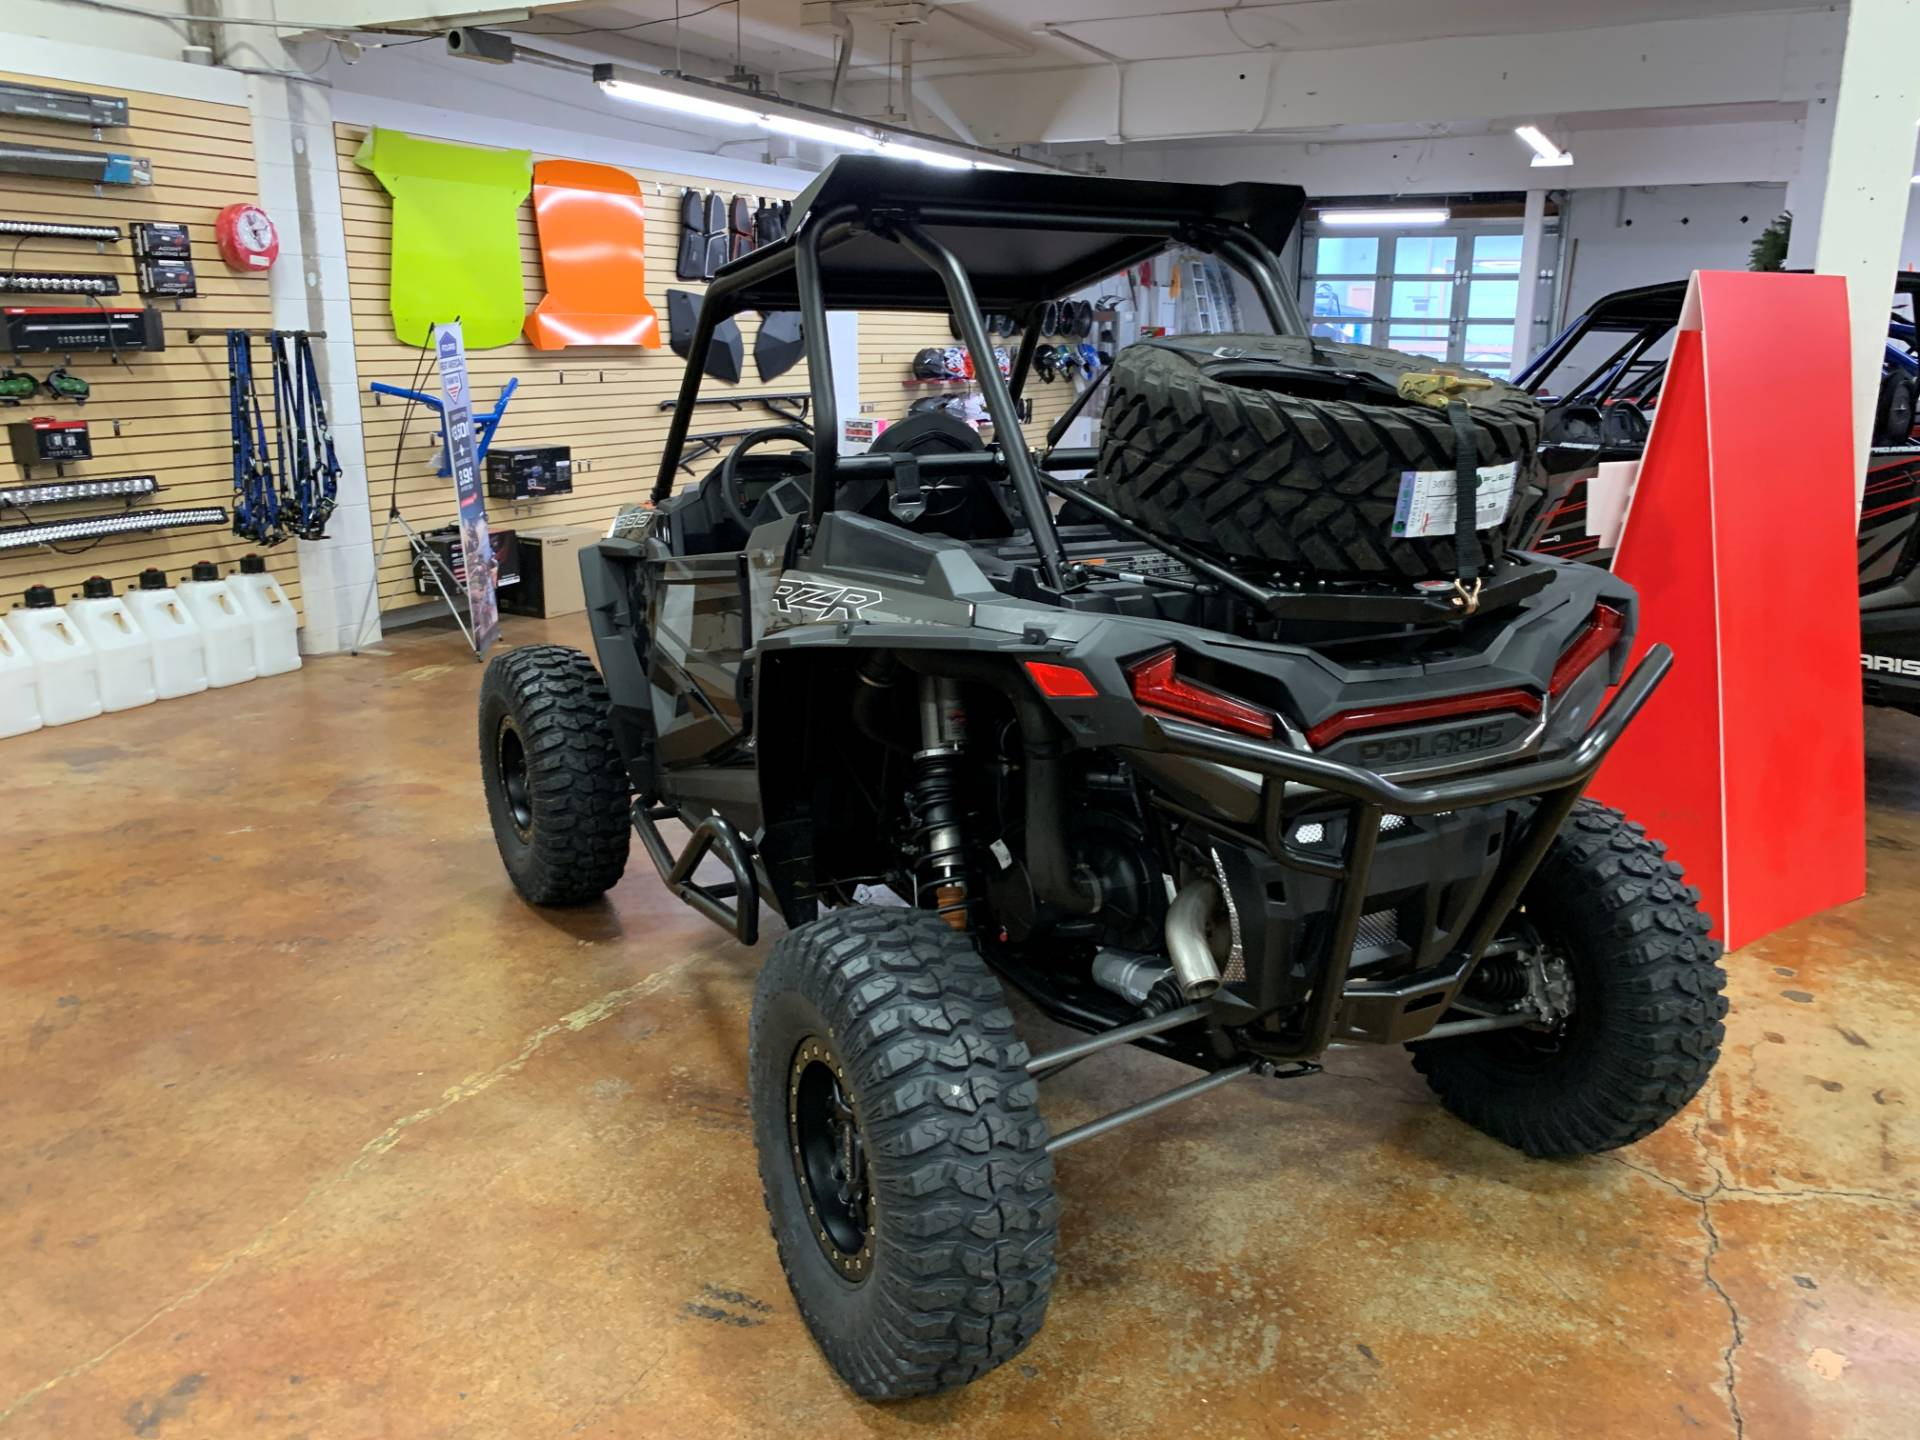 2020 Polaris RZR XP 1000 LE in Tualatin, Oregon - Photo 3